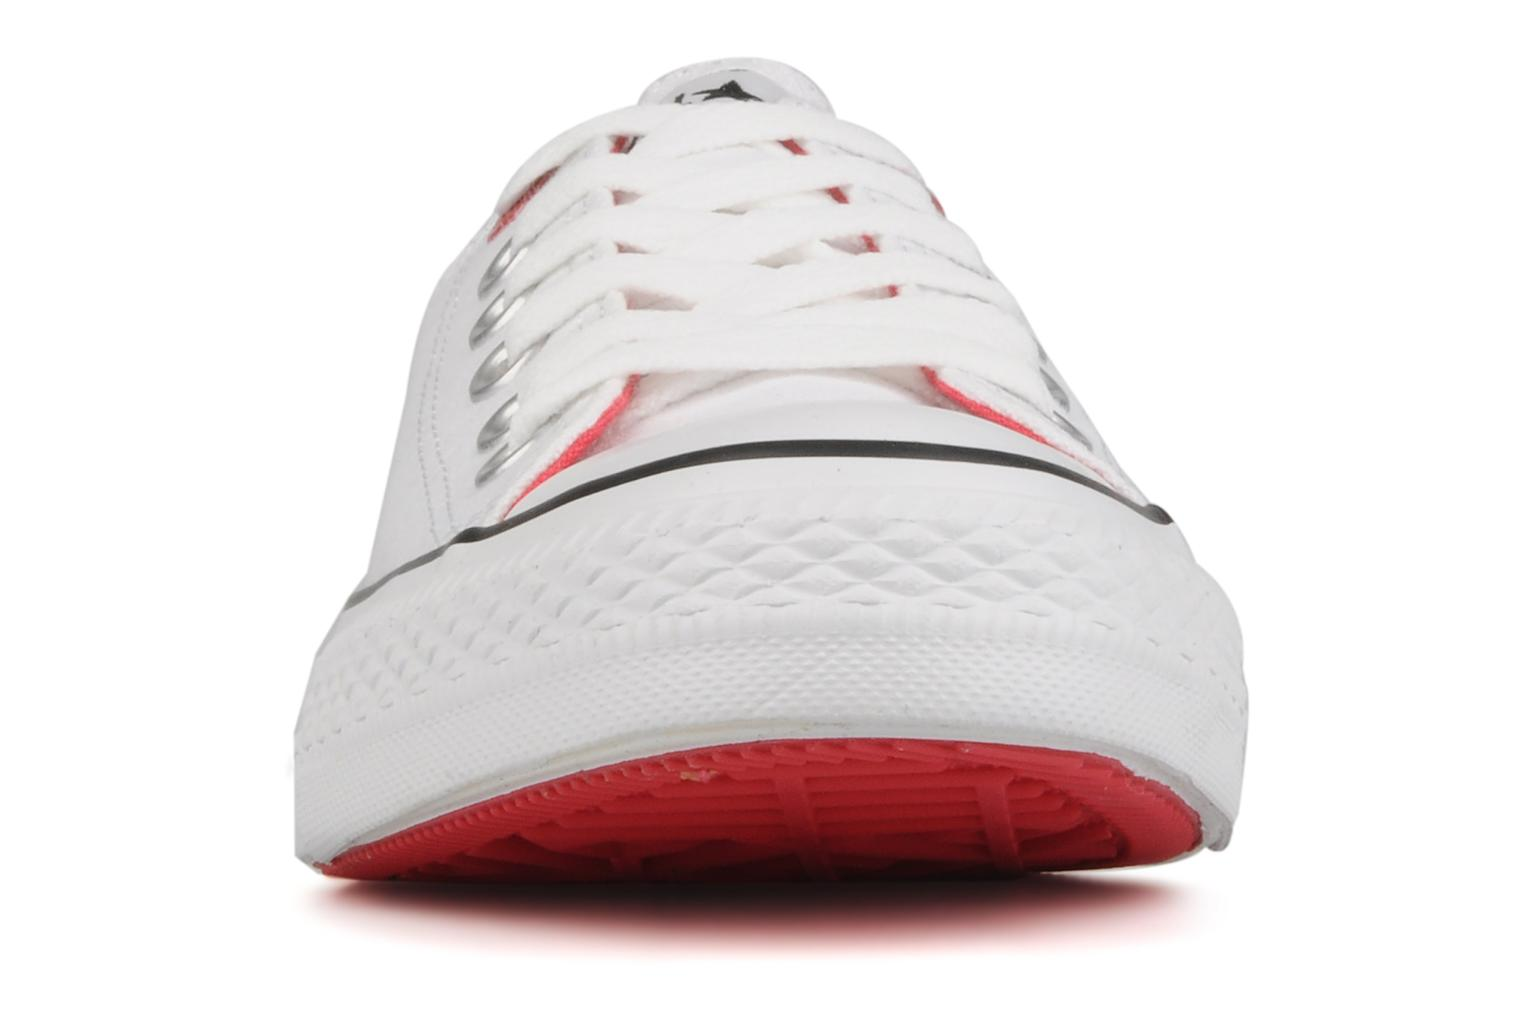 Trainers Converse Chuck taylor all star red i am … ox w White model view